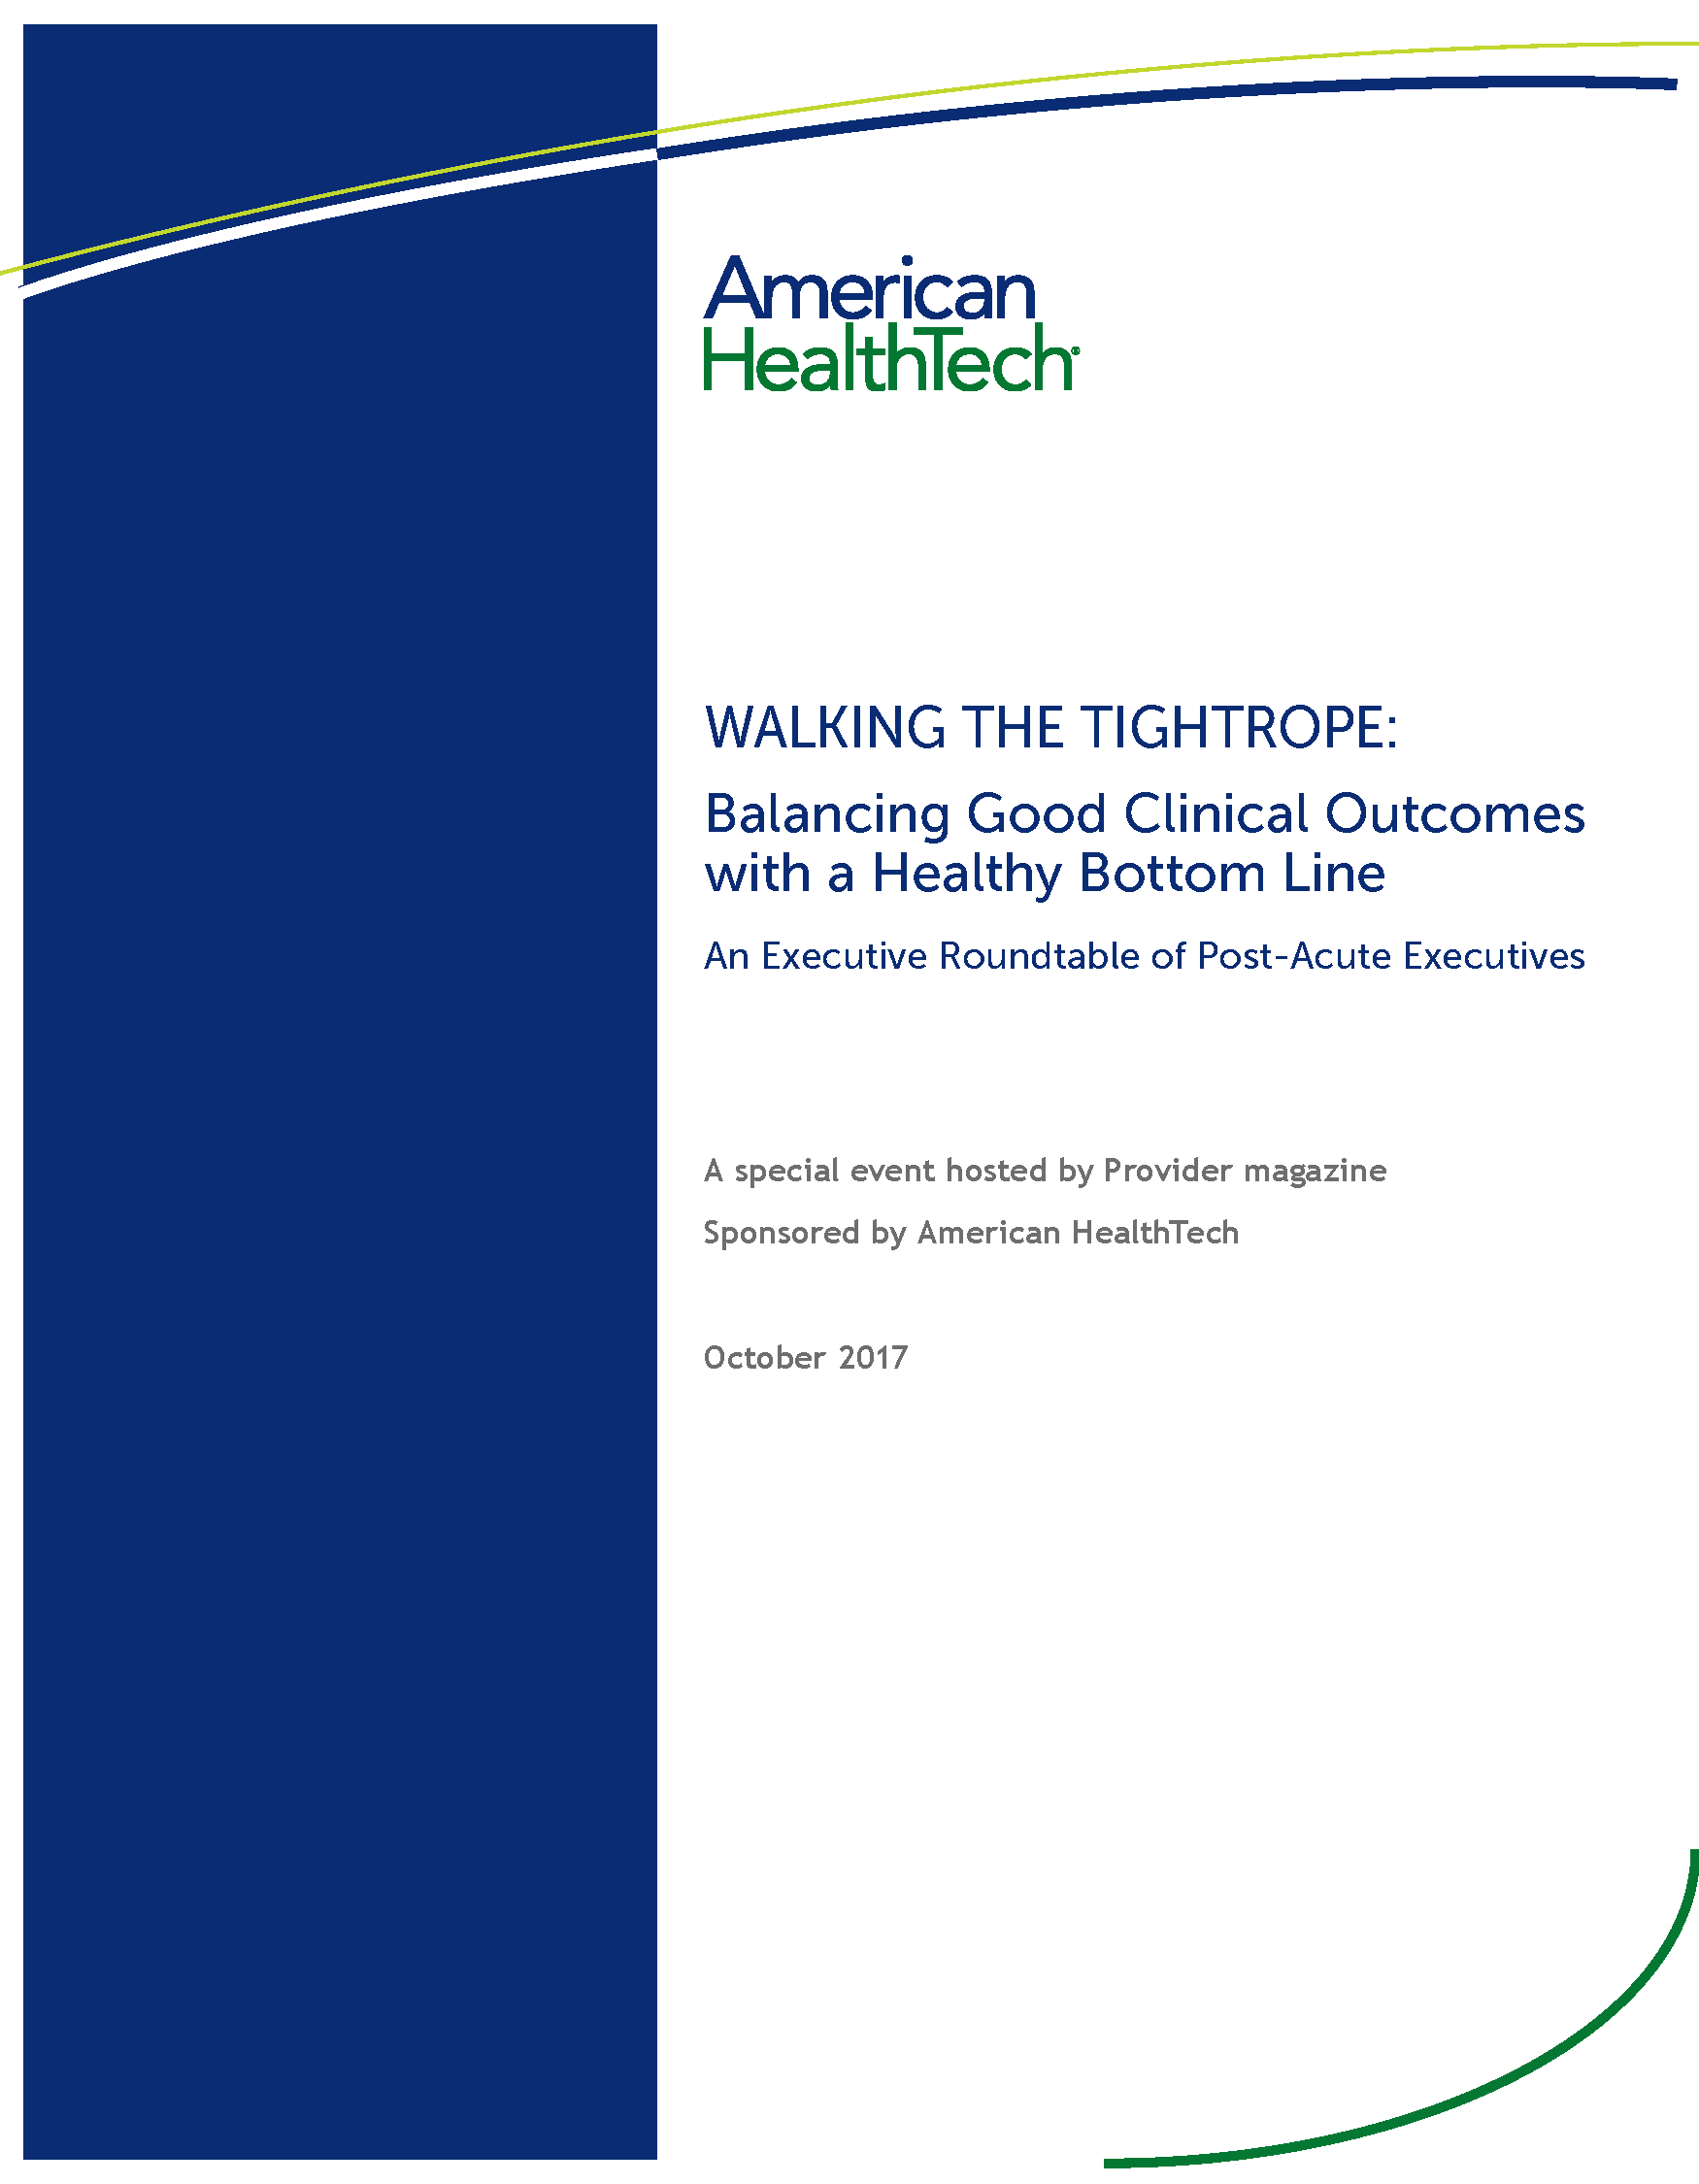 Walking the Tightrope: Balancing Good Clinical Outcomes with a Healthy Bottom Line